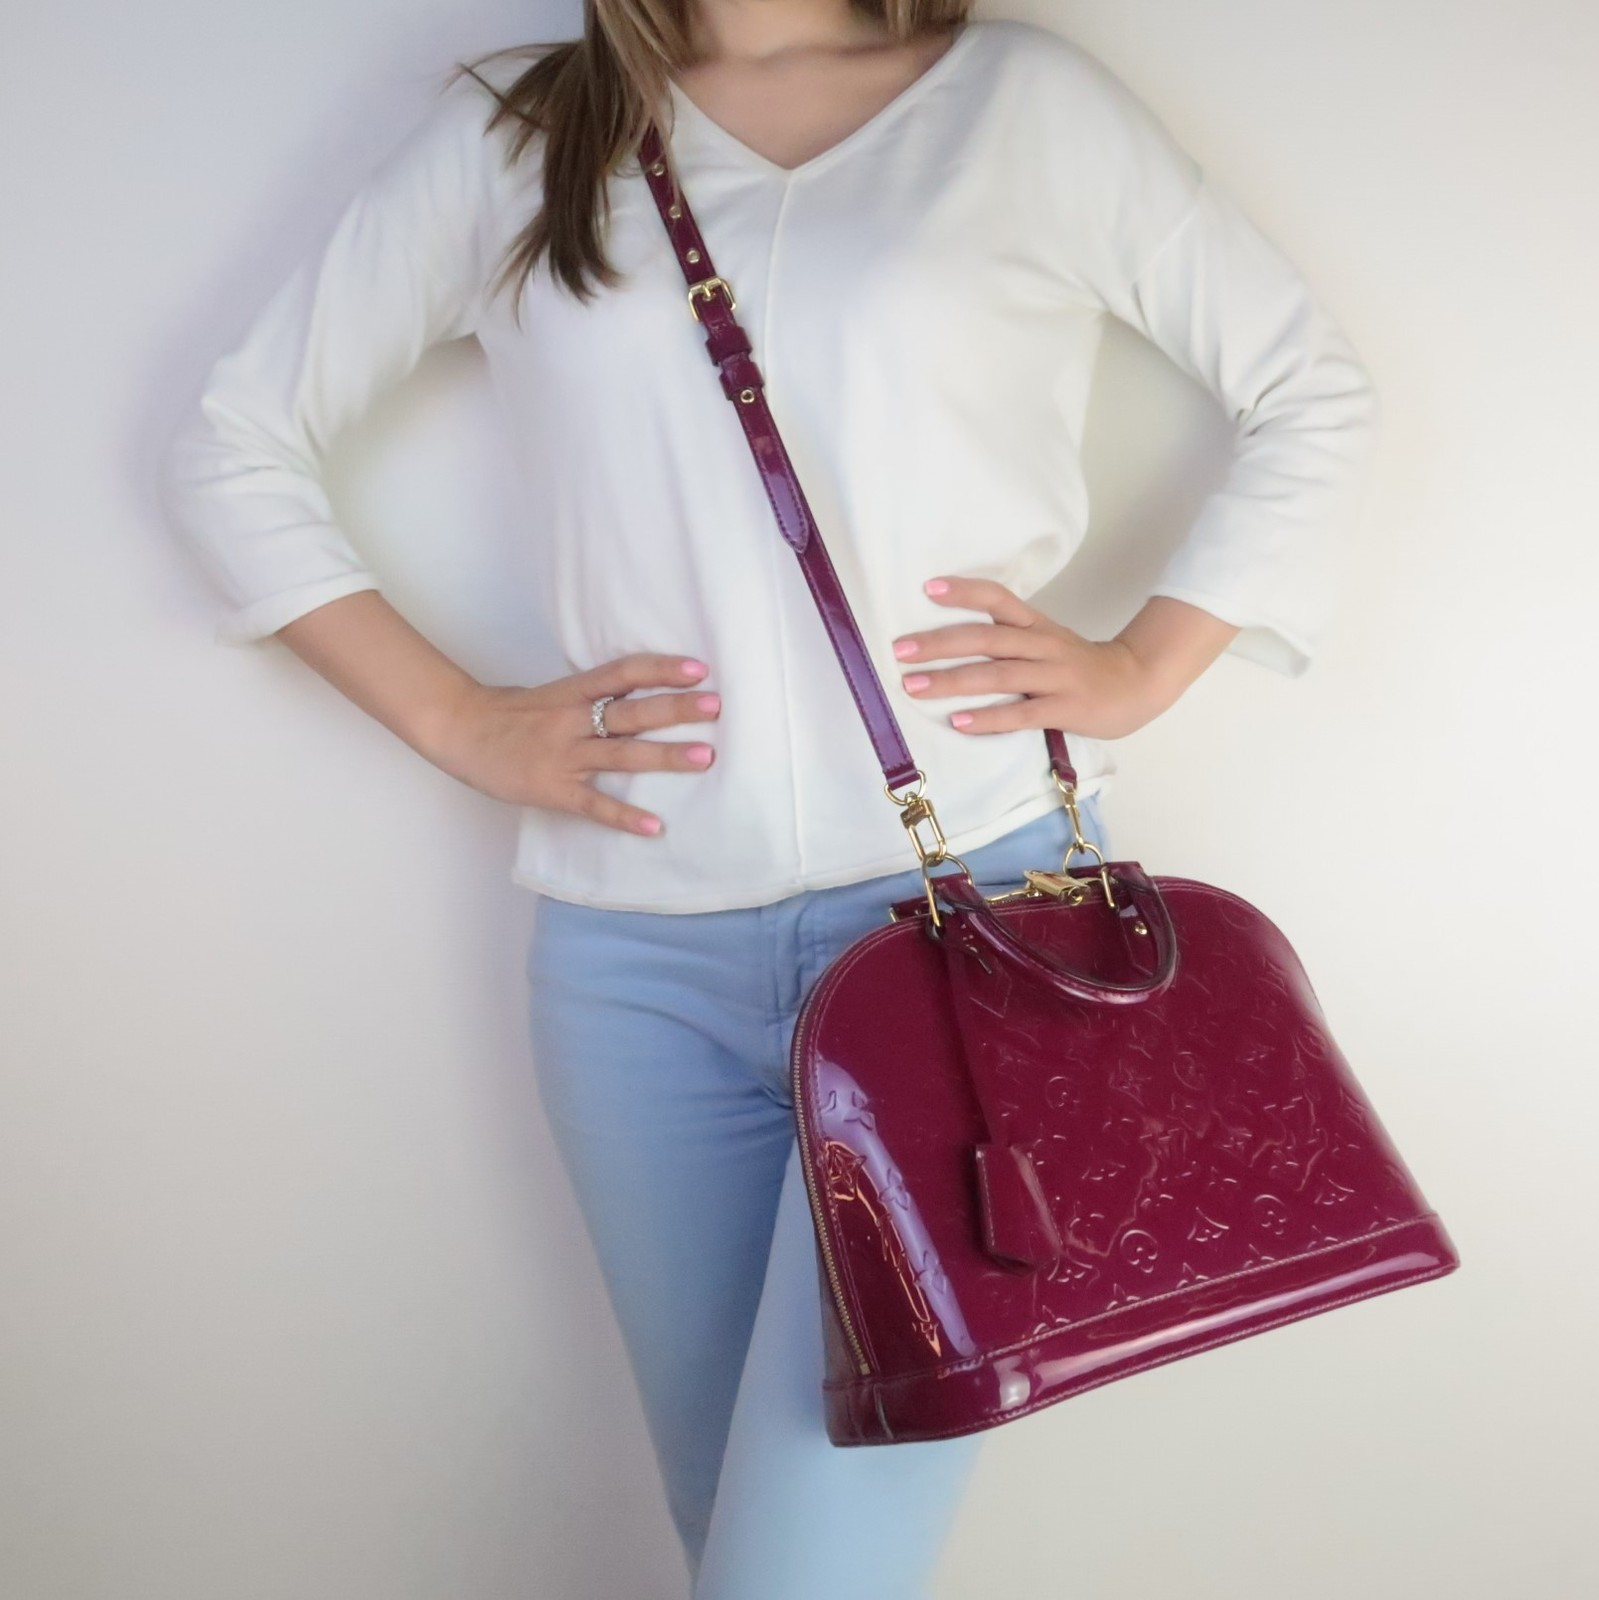 Primary image for Louis Vuitton Monogram Vernis Magenta Alma PM bag + matching strap